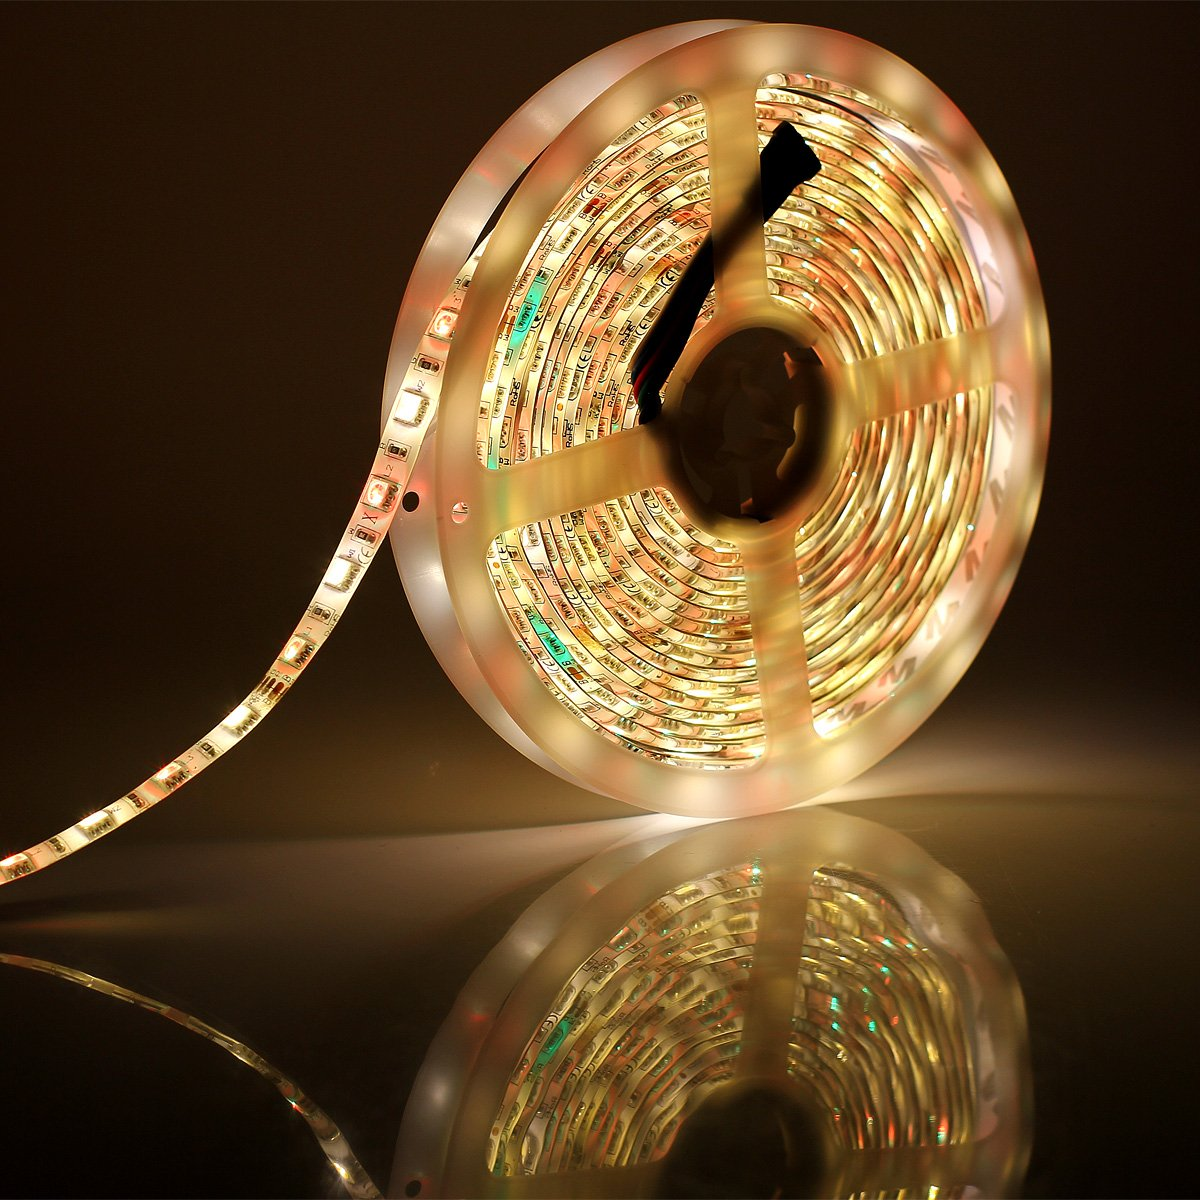 SUPERNIGHT RGBW LED Strip Light RGB Color Changing Rope Lighting with Warm White 3500K Color 16.4ft 300leds 5050 Tape Light (RGB + Warm White) by SUPERNIGHT (Image #6)